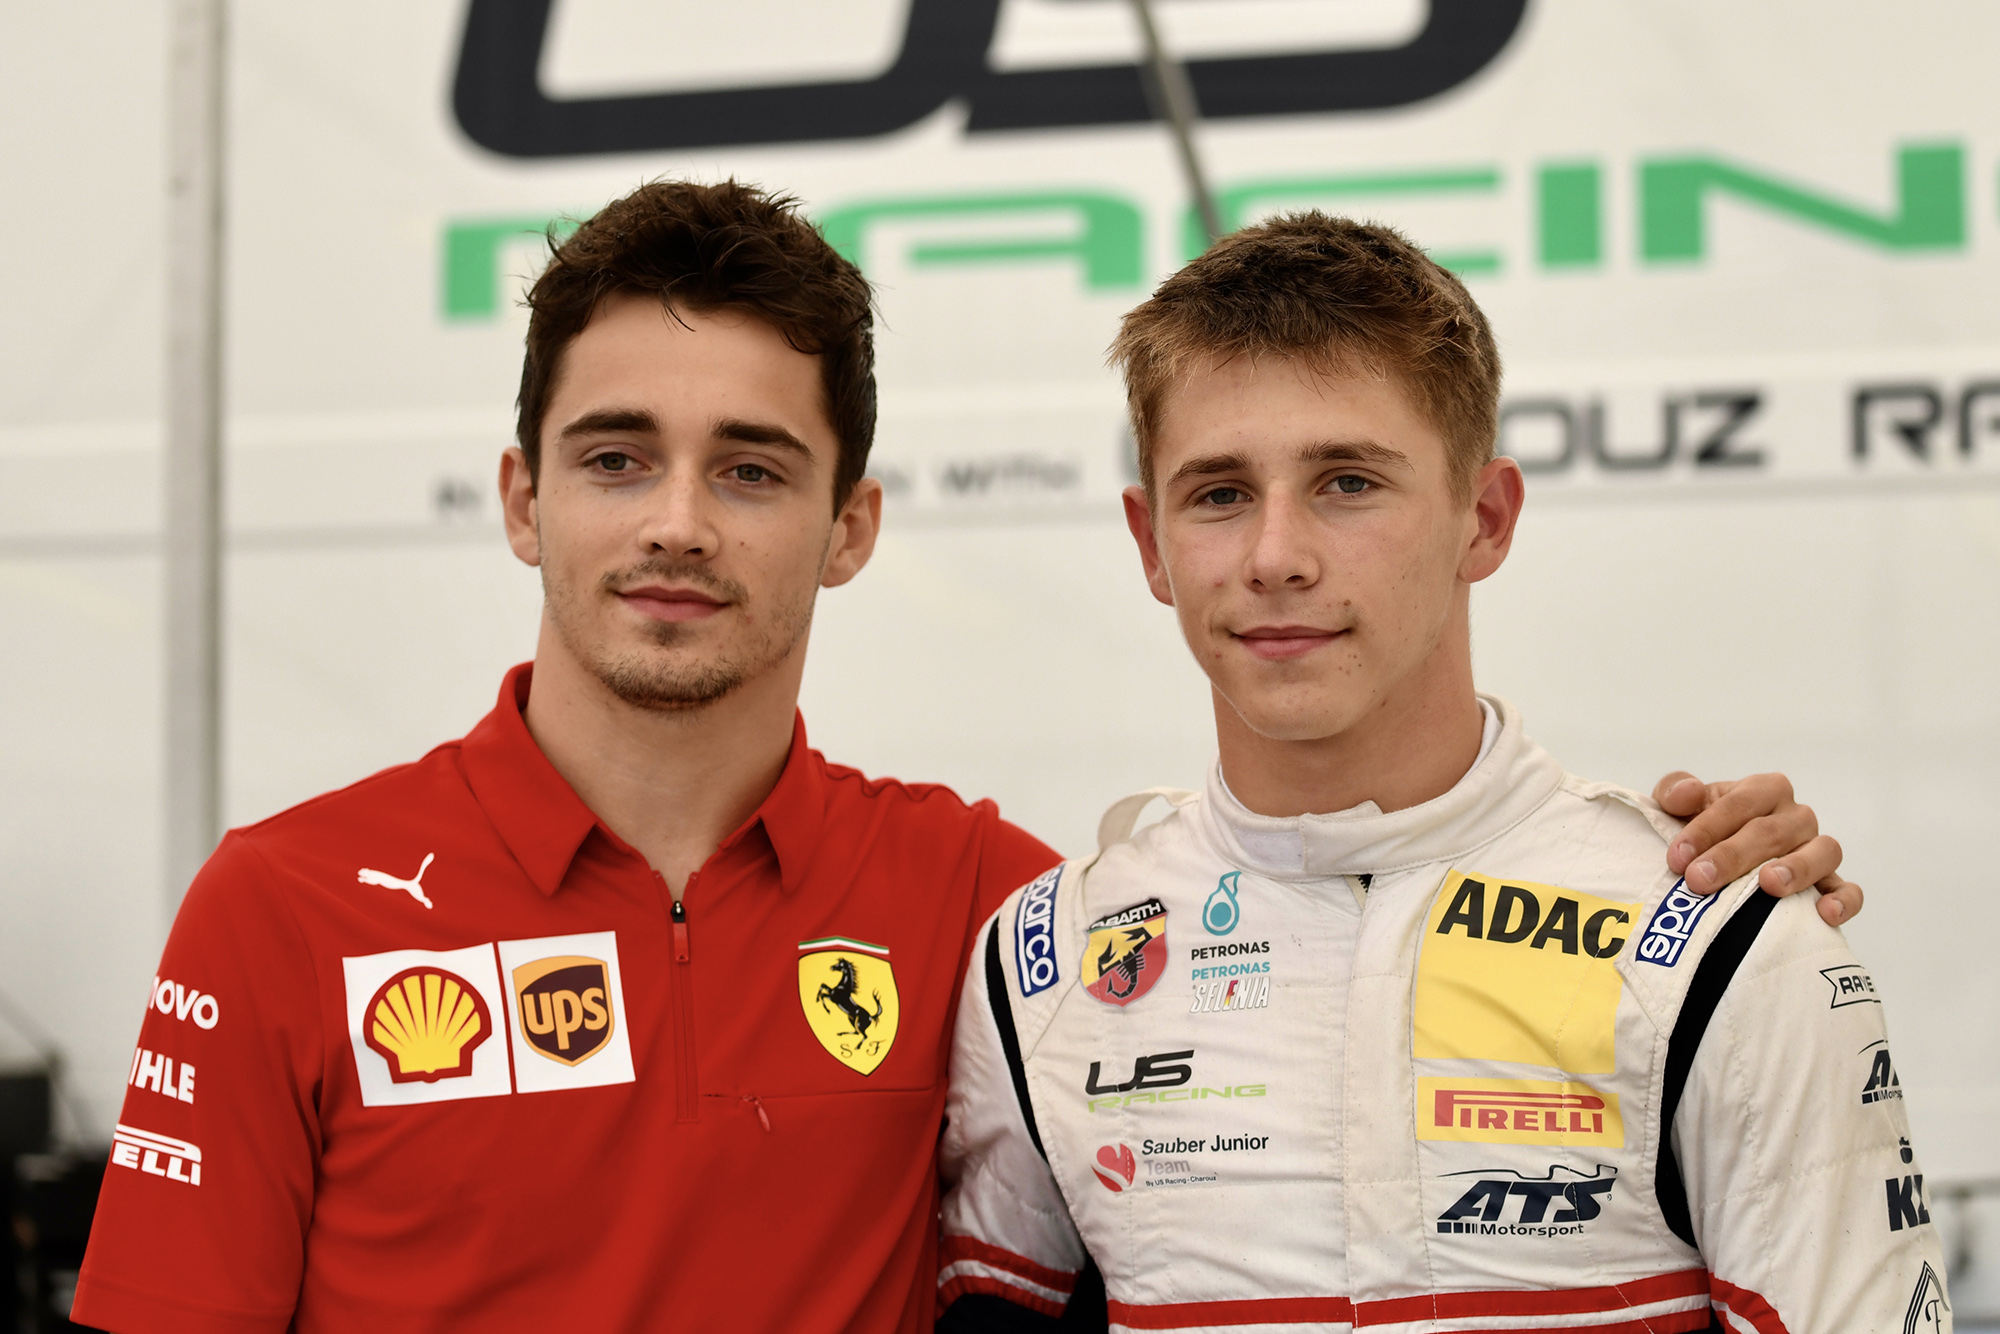 Ferrari signs Arthur Leclerc to young driver programme